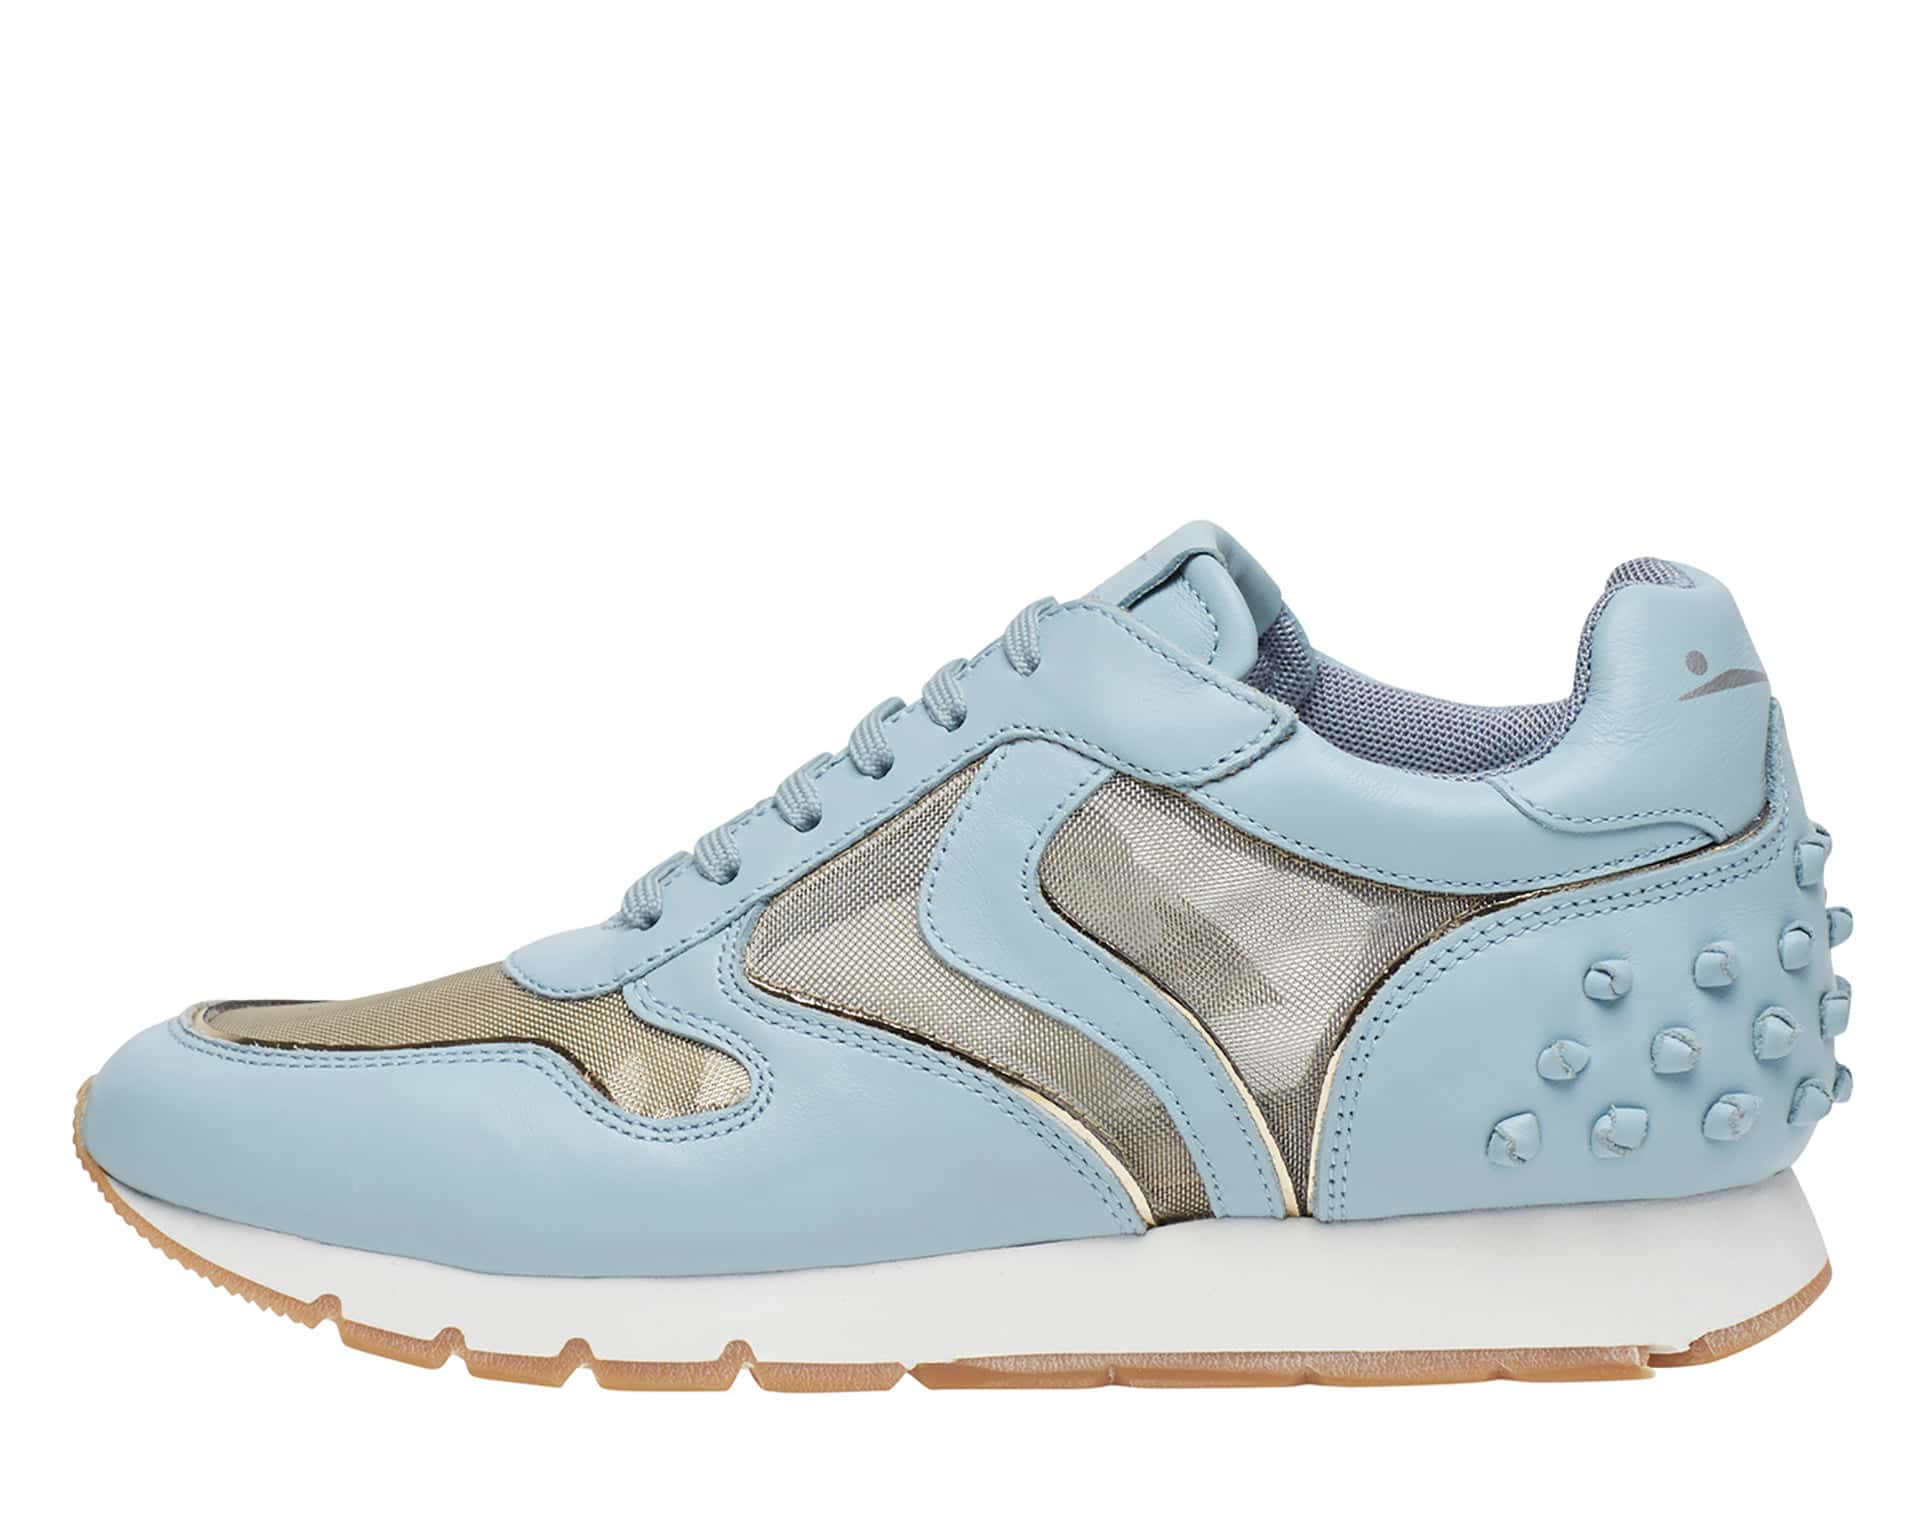 JULIA TULLY - Leather and mesh sneakers - Light Blue